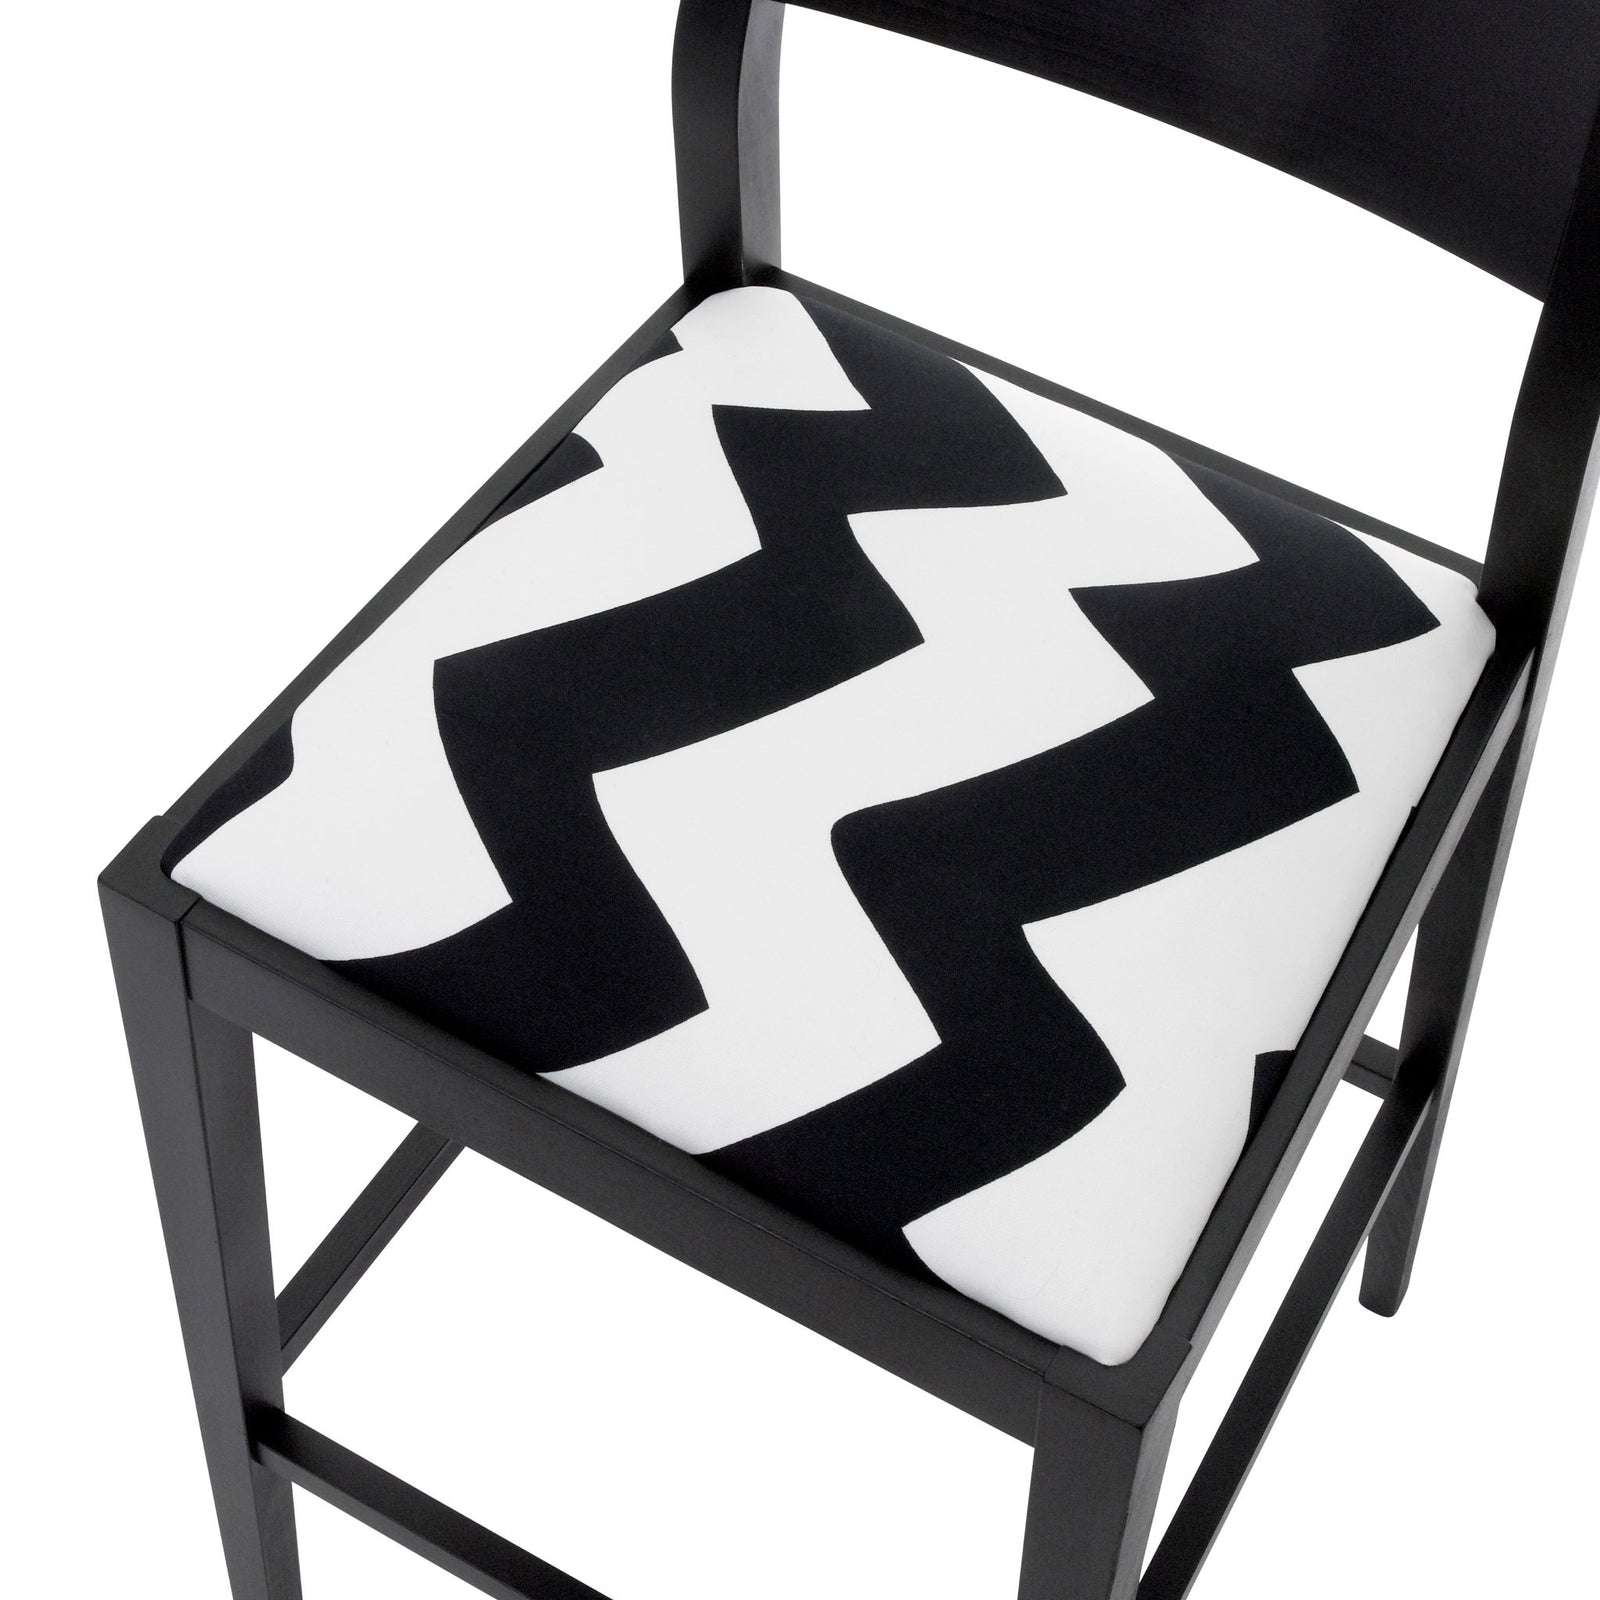 James Luxury Bar Stool upholstered in the inspiring Tizzy Peaks by Jon Burgerman